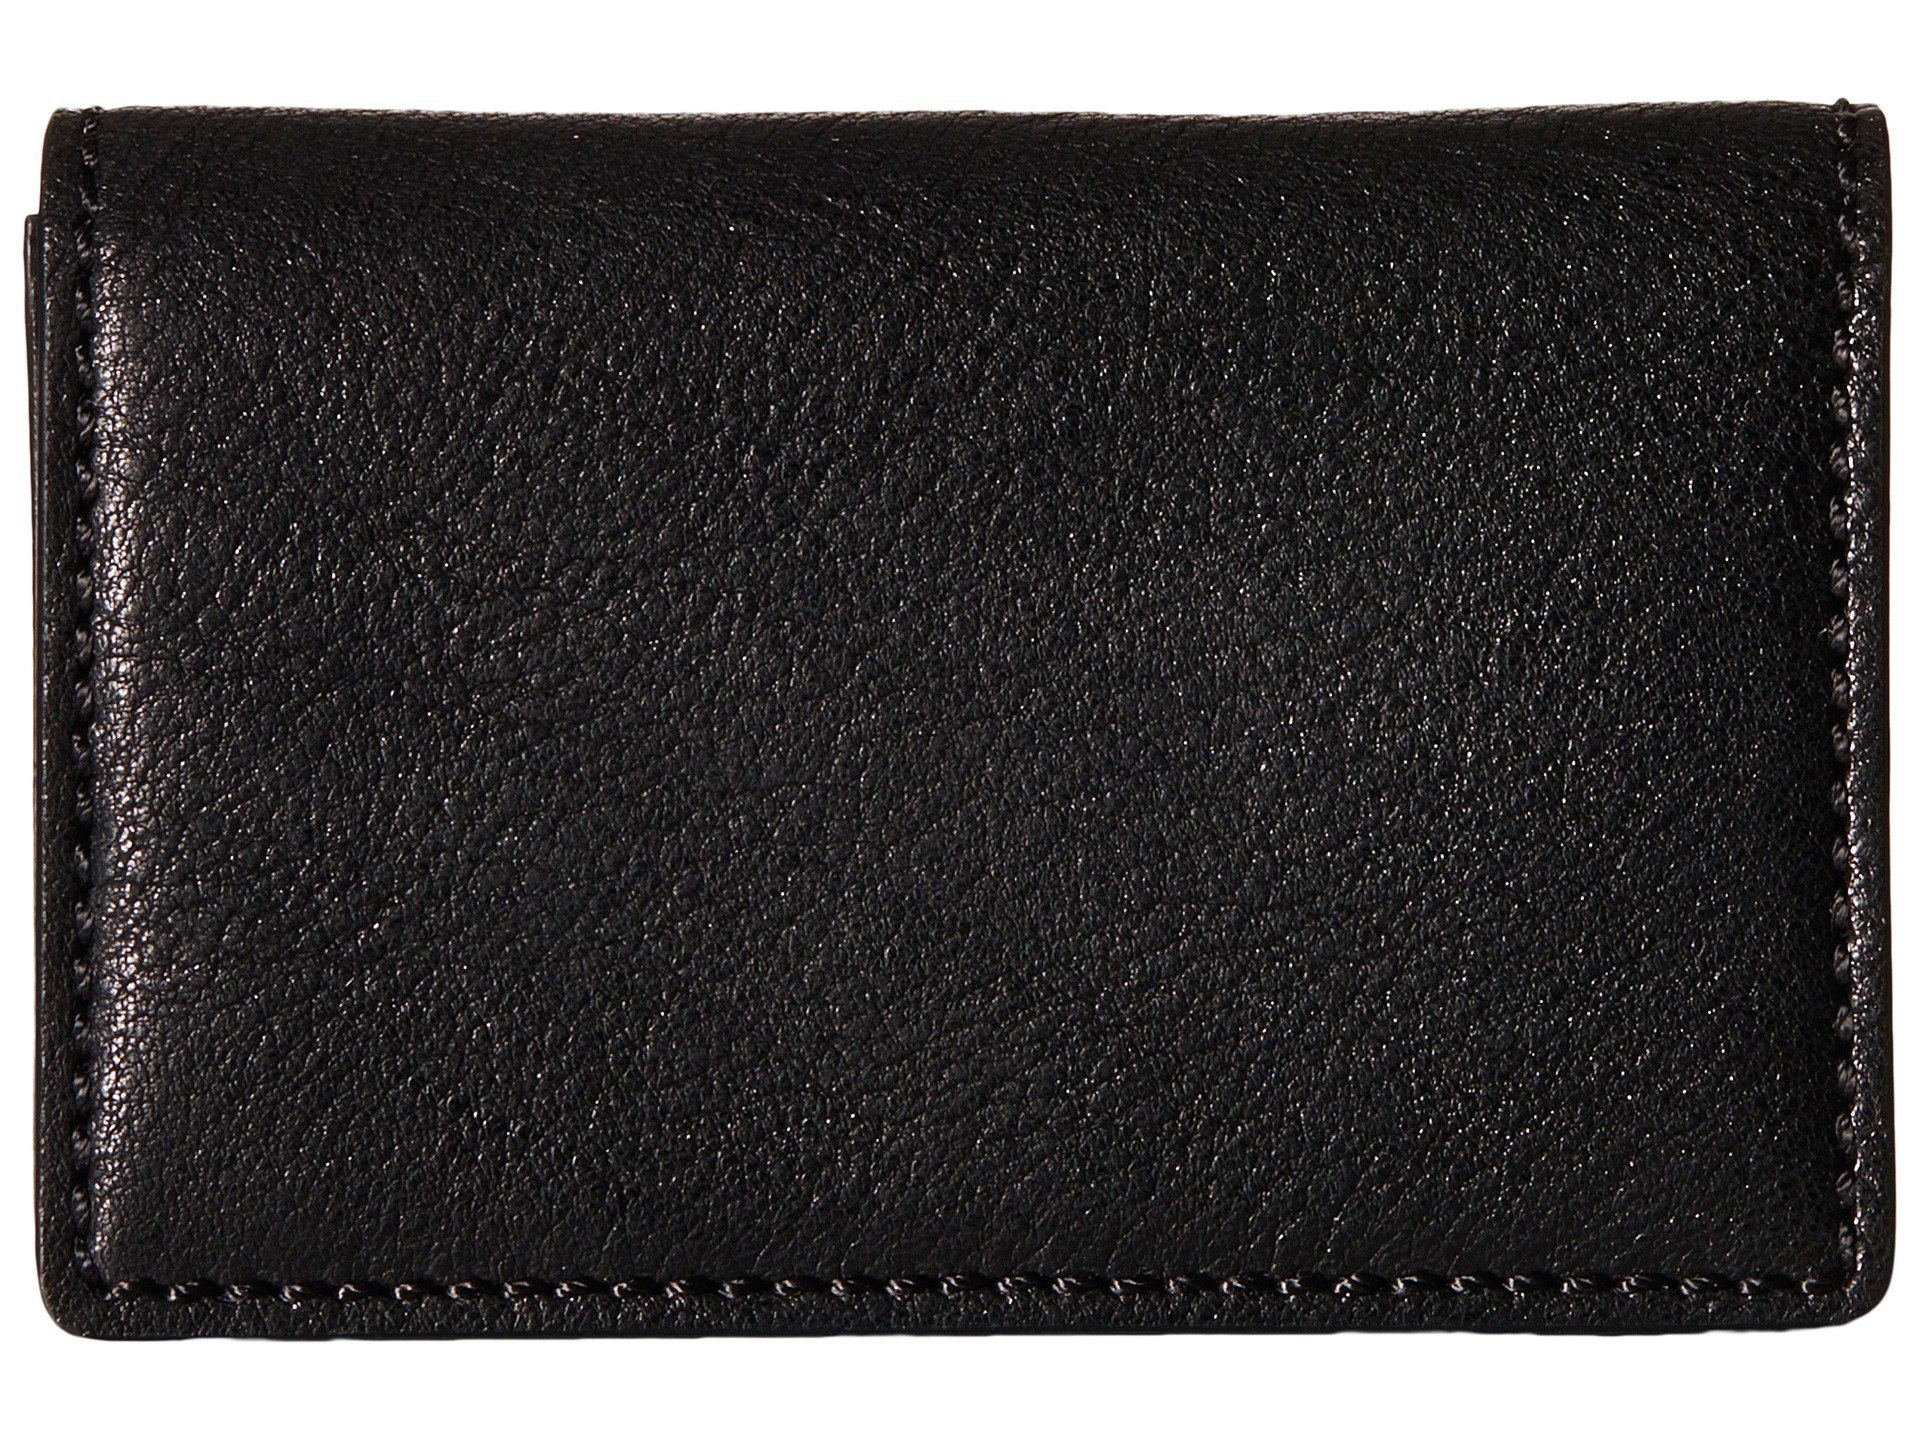 Bosca Full Gusset Case Collection Black Card Washed qr8nqRxC